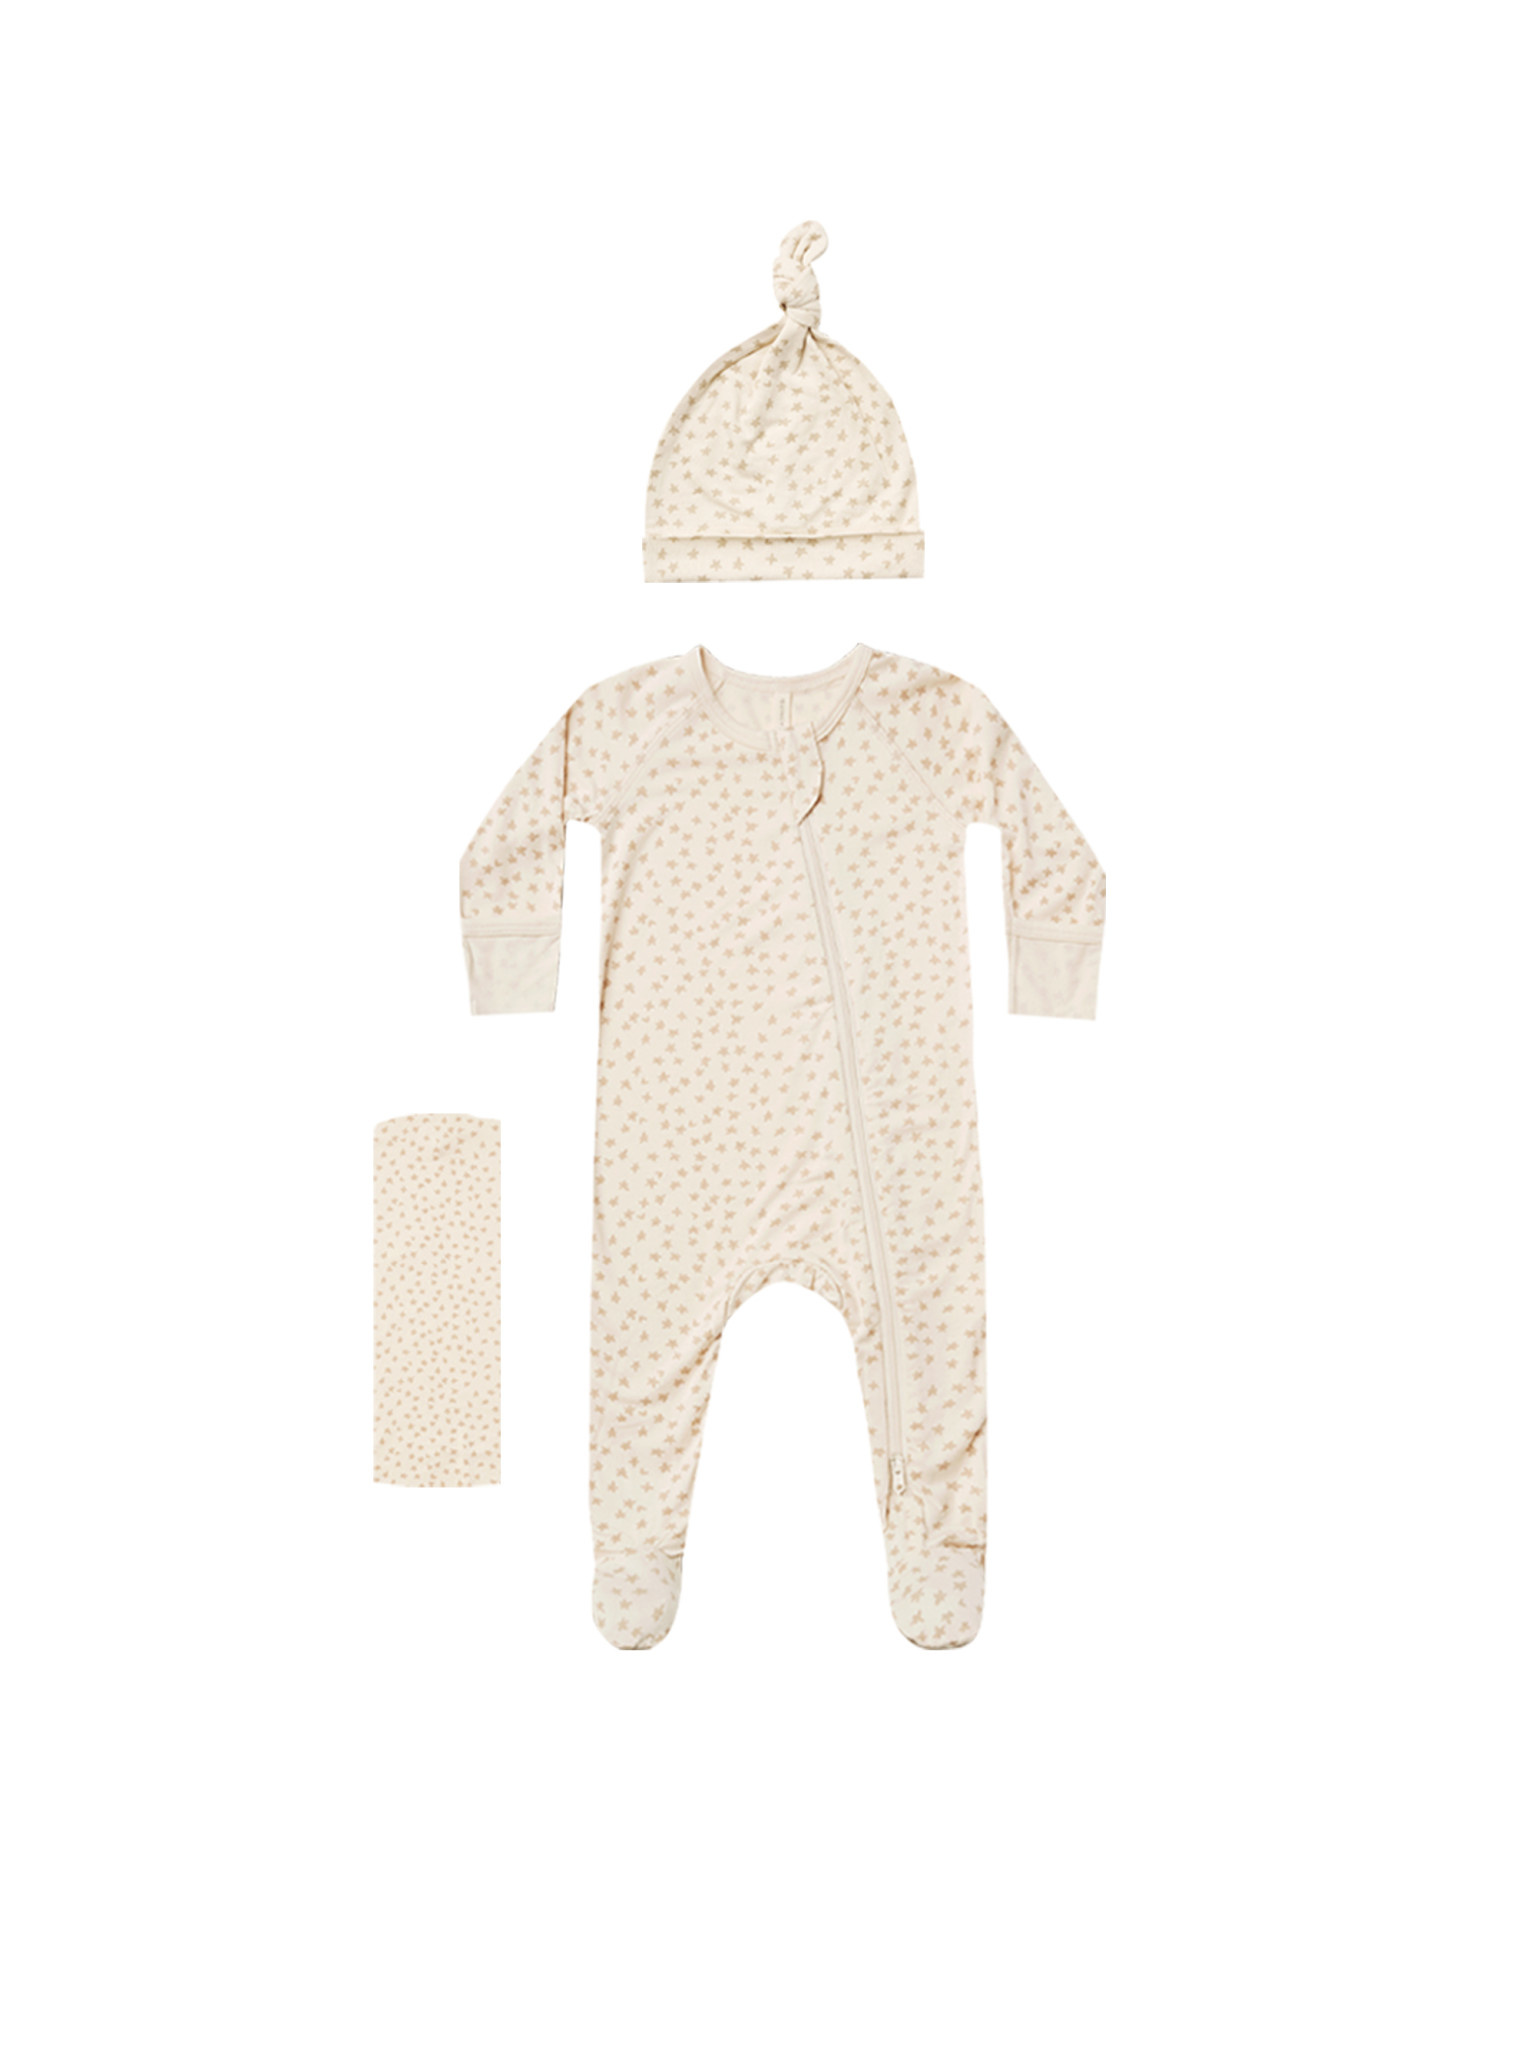 QUINCY MAE Scatter Bamboo Layette Set